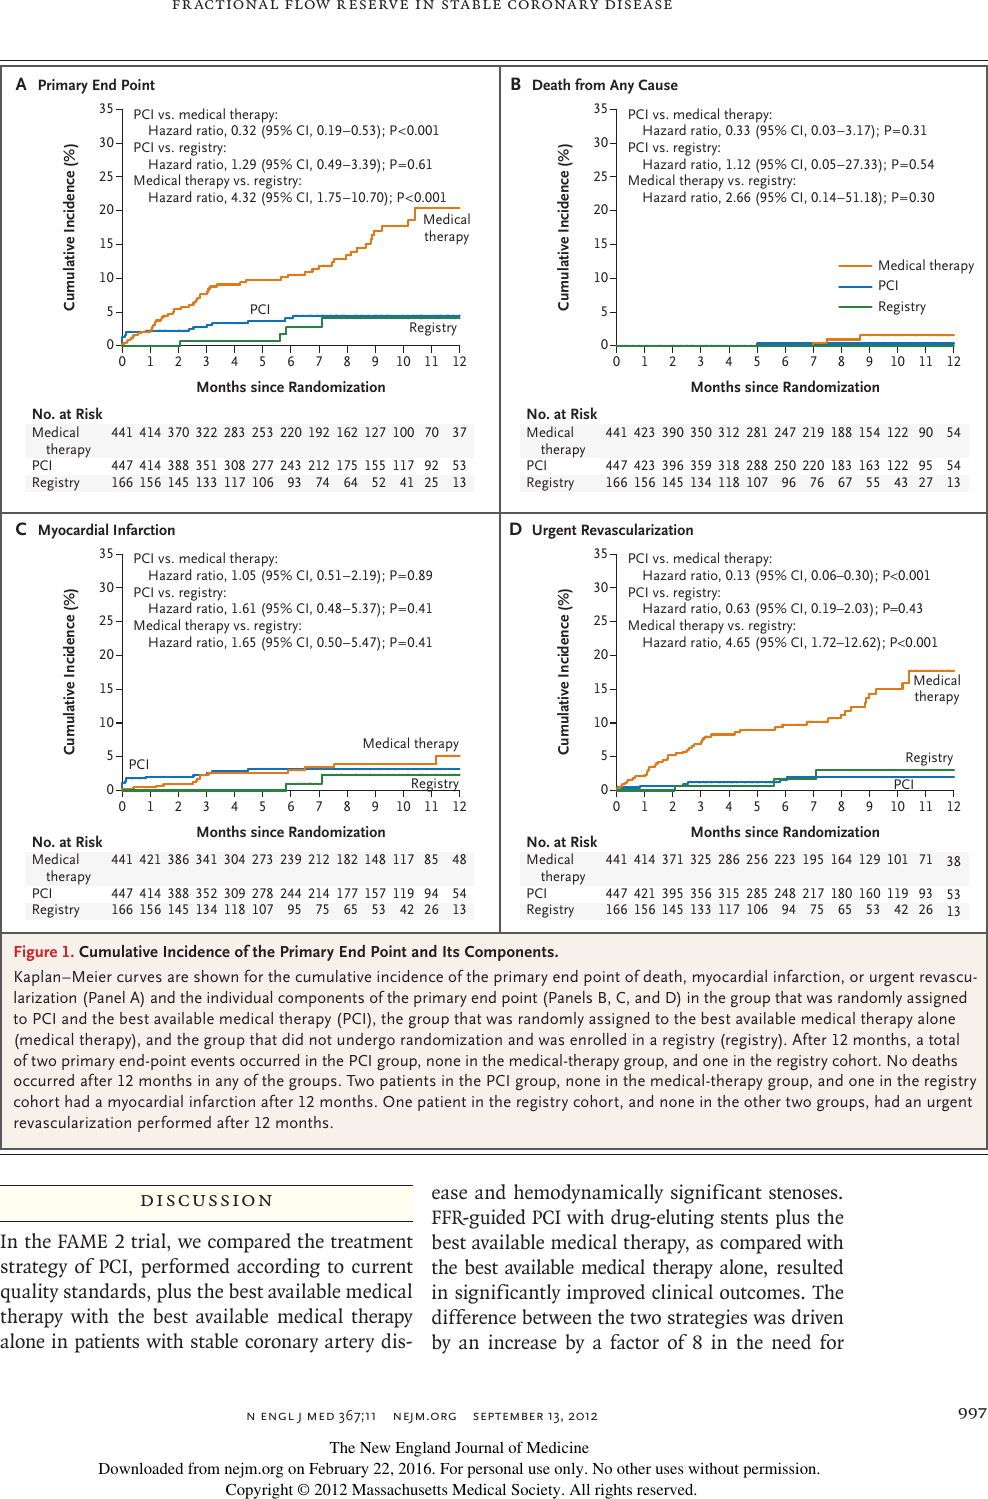 Philips 989604186581 fractional flow reserveguided pci versus page 7 of philips 989604186581 fractional flow reserveguided pci versus medical therapy in stable sciox Choice Image